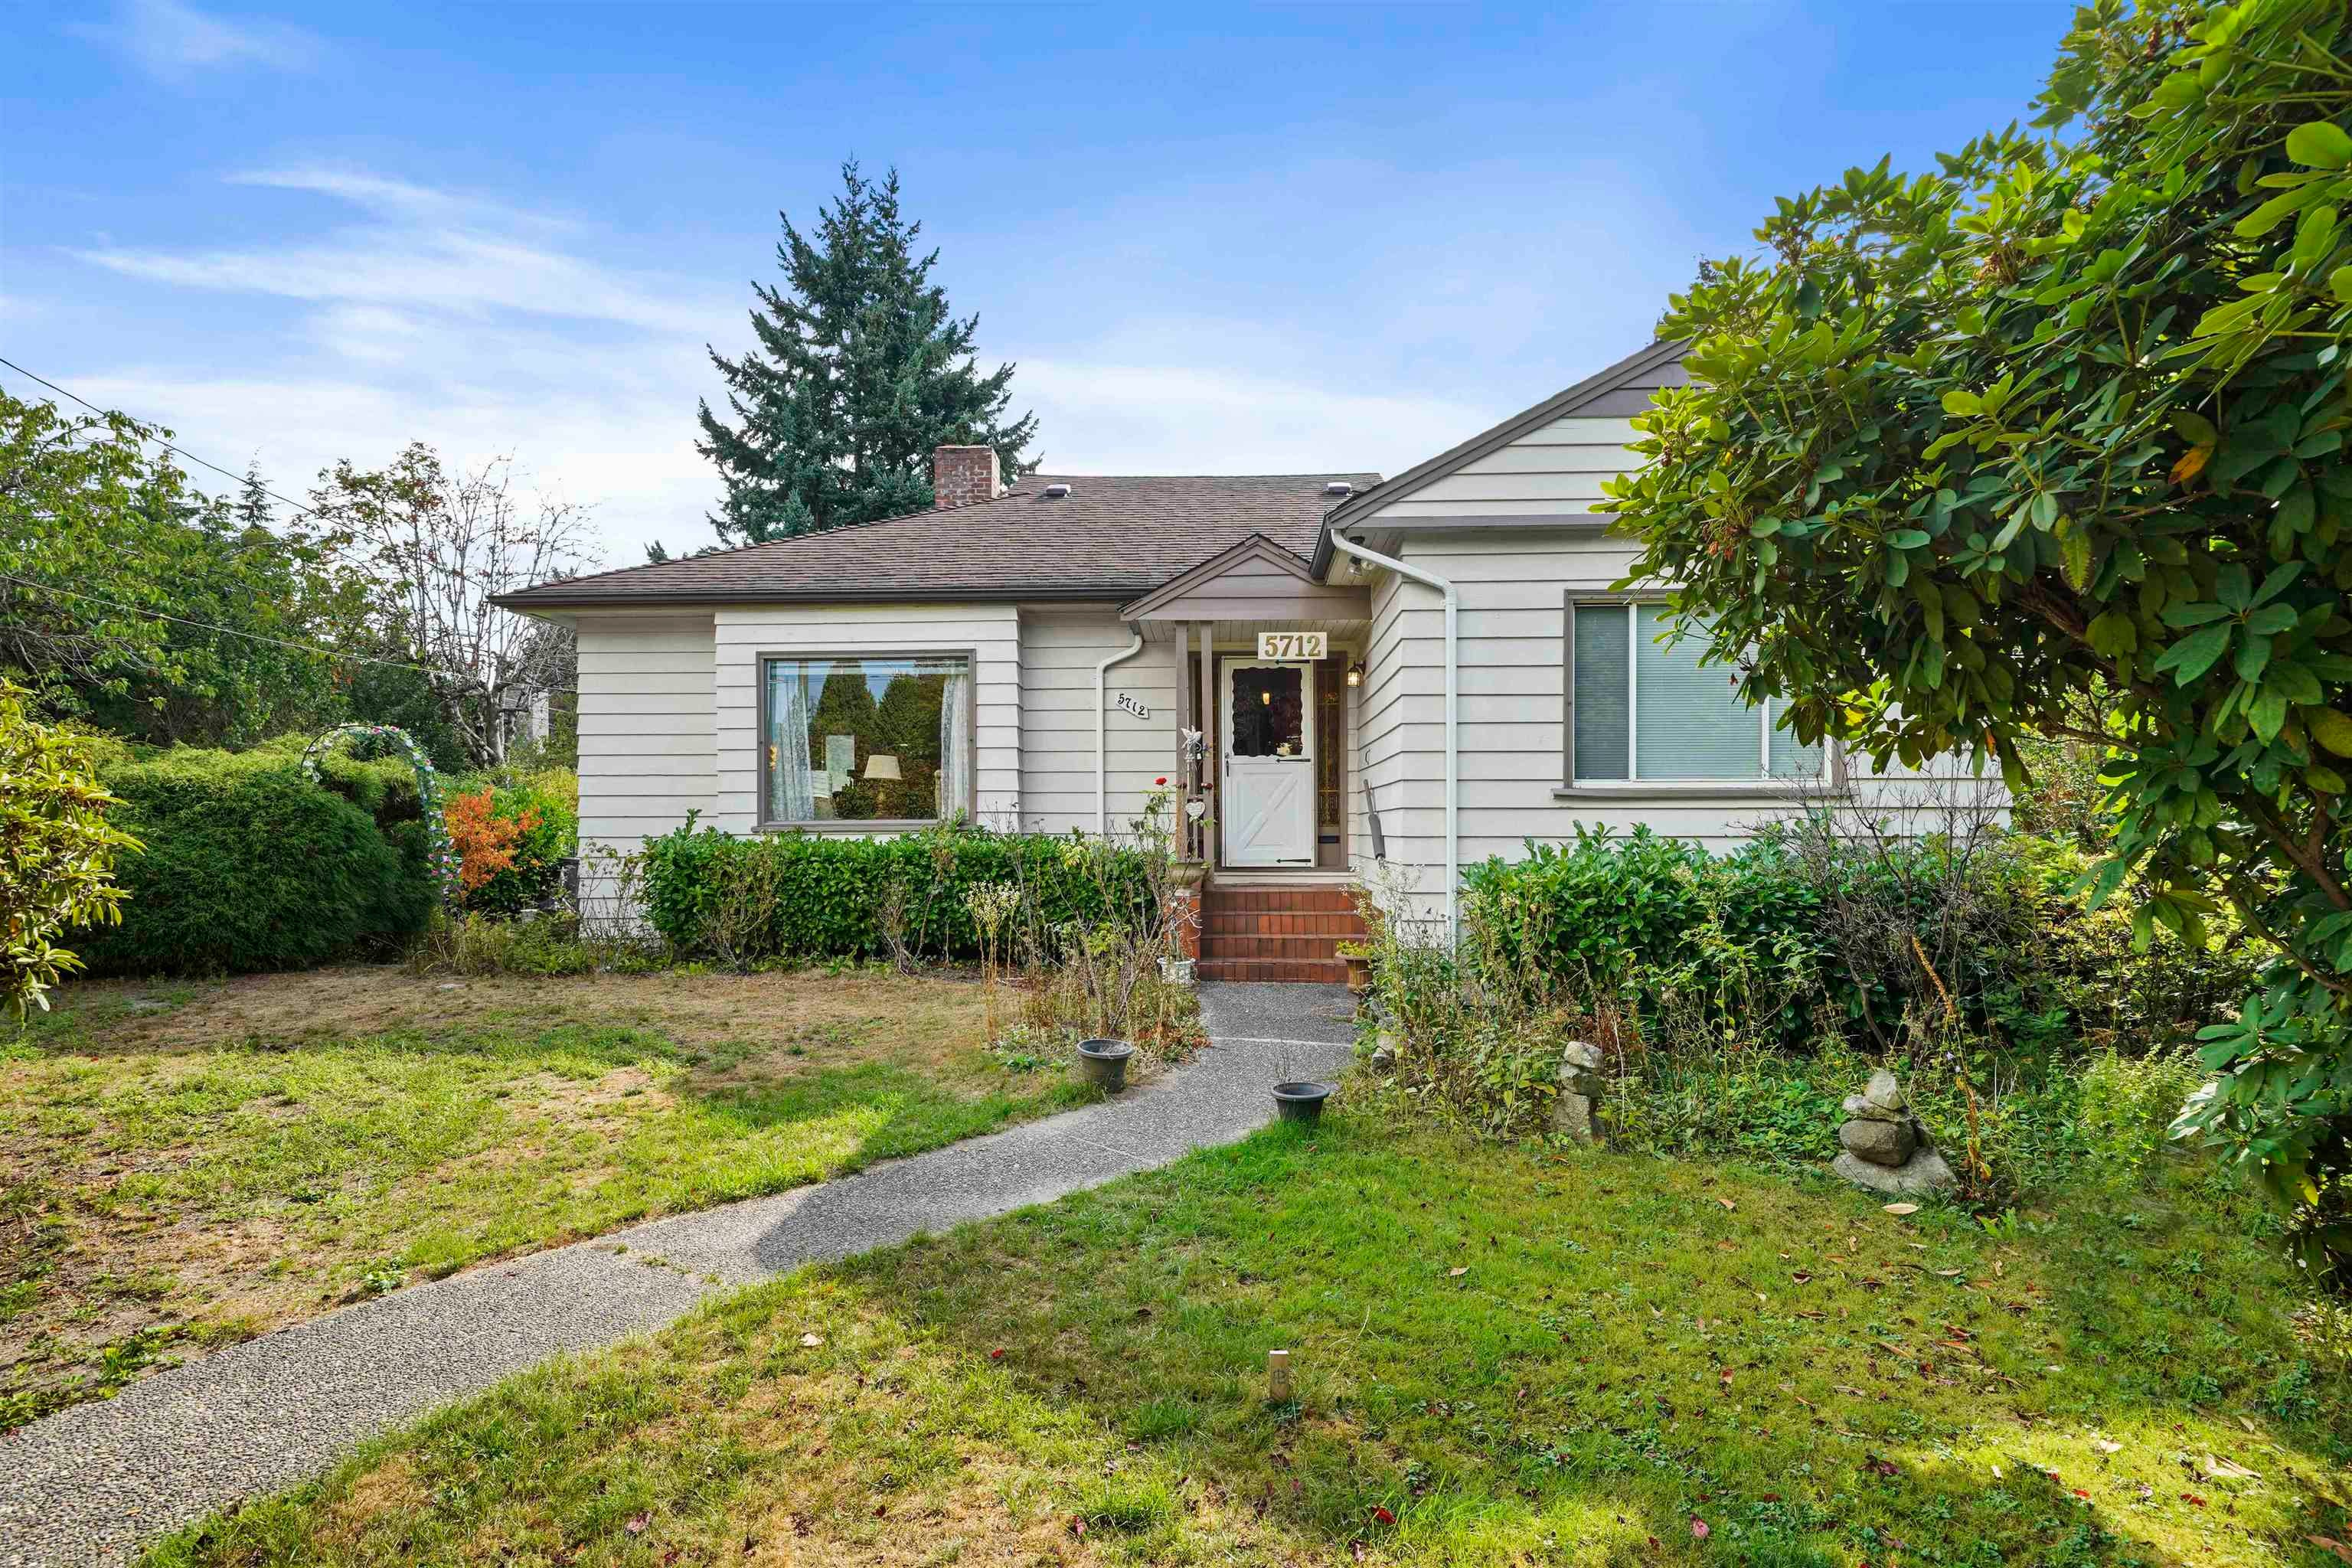 5712 CROWN STREET - Southlands House/Single Family for sale, 3 Bedrooms (R2619308) - #1